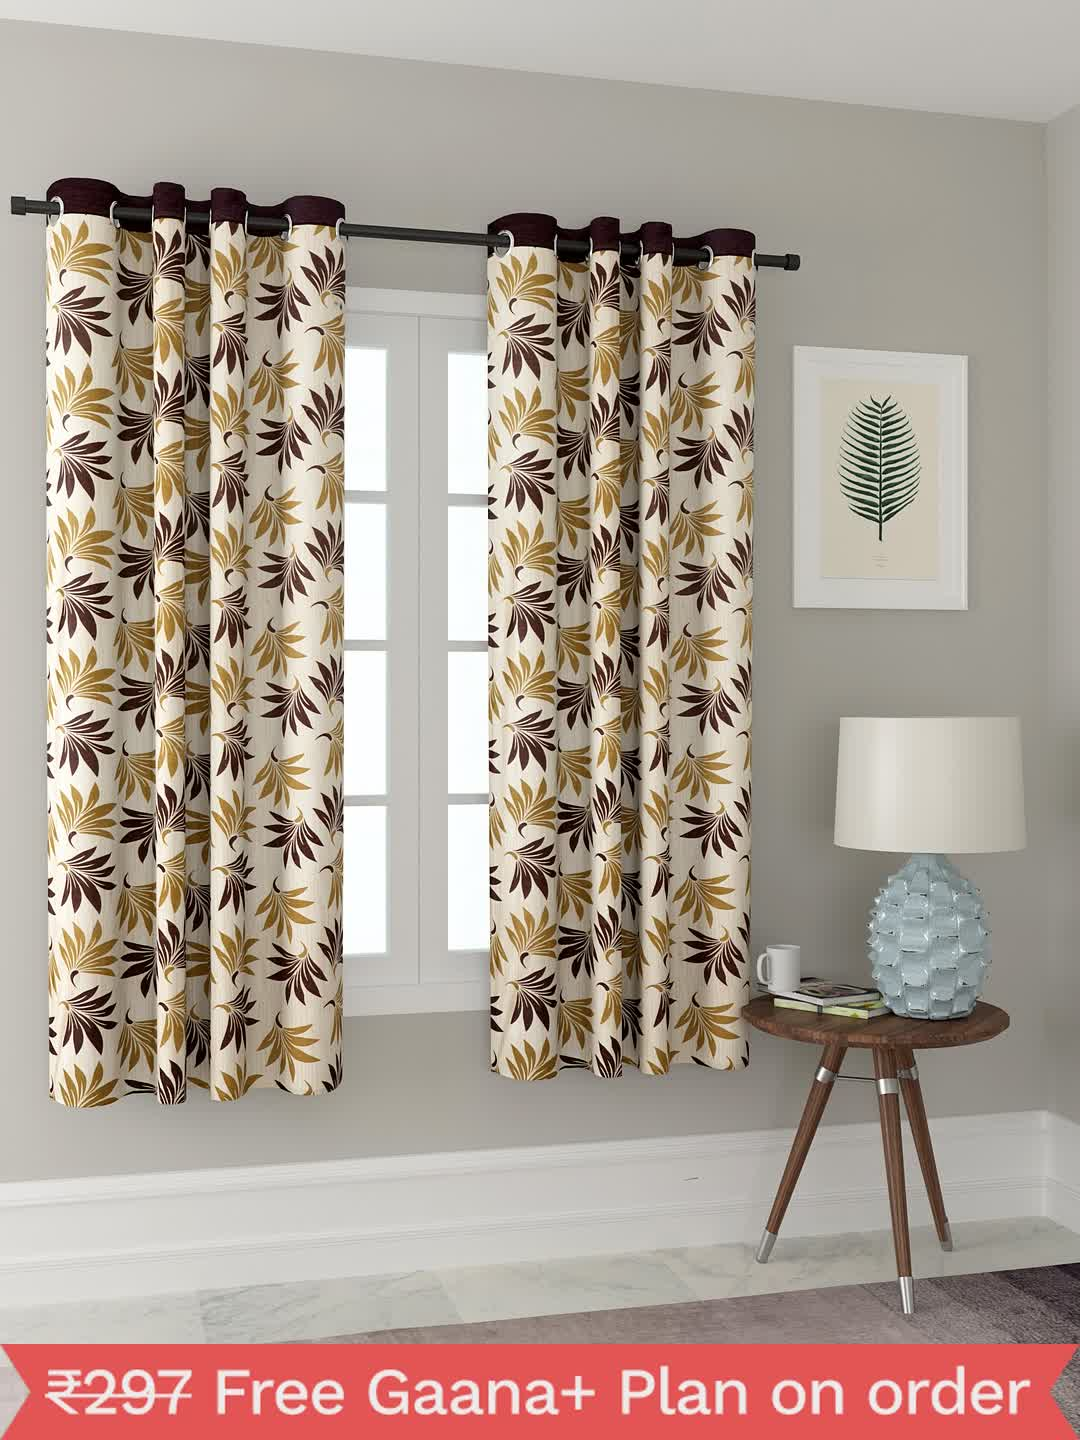 Polyester Printed Window Curtains for Bedroom, Kitchen, Kids or Living Room-022_Set of 2 - 1, Small